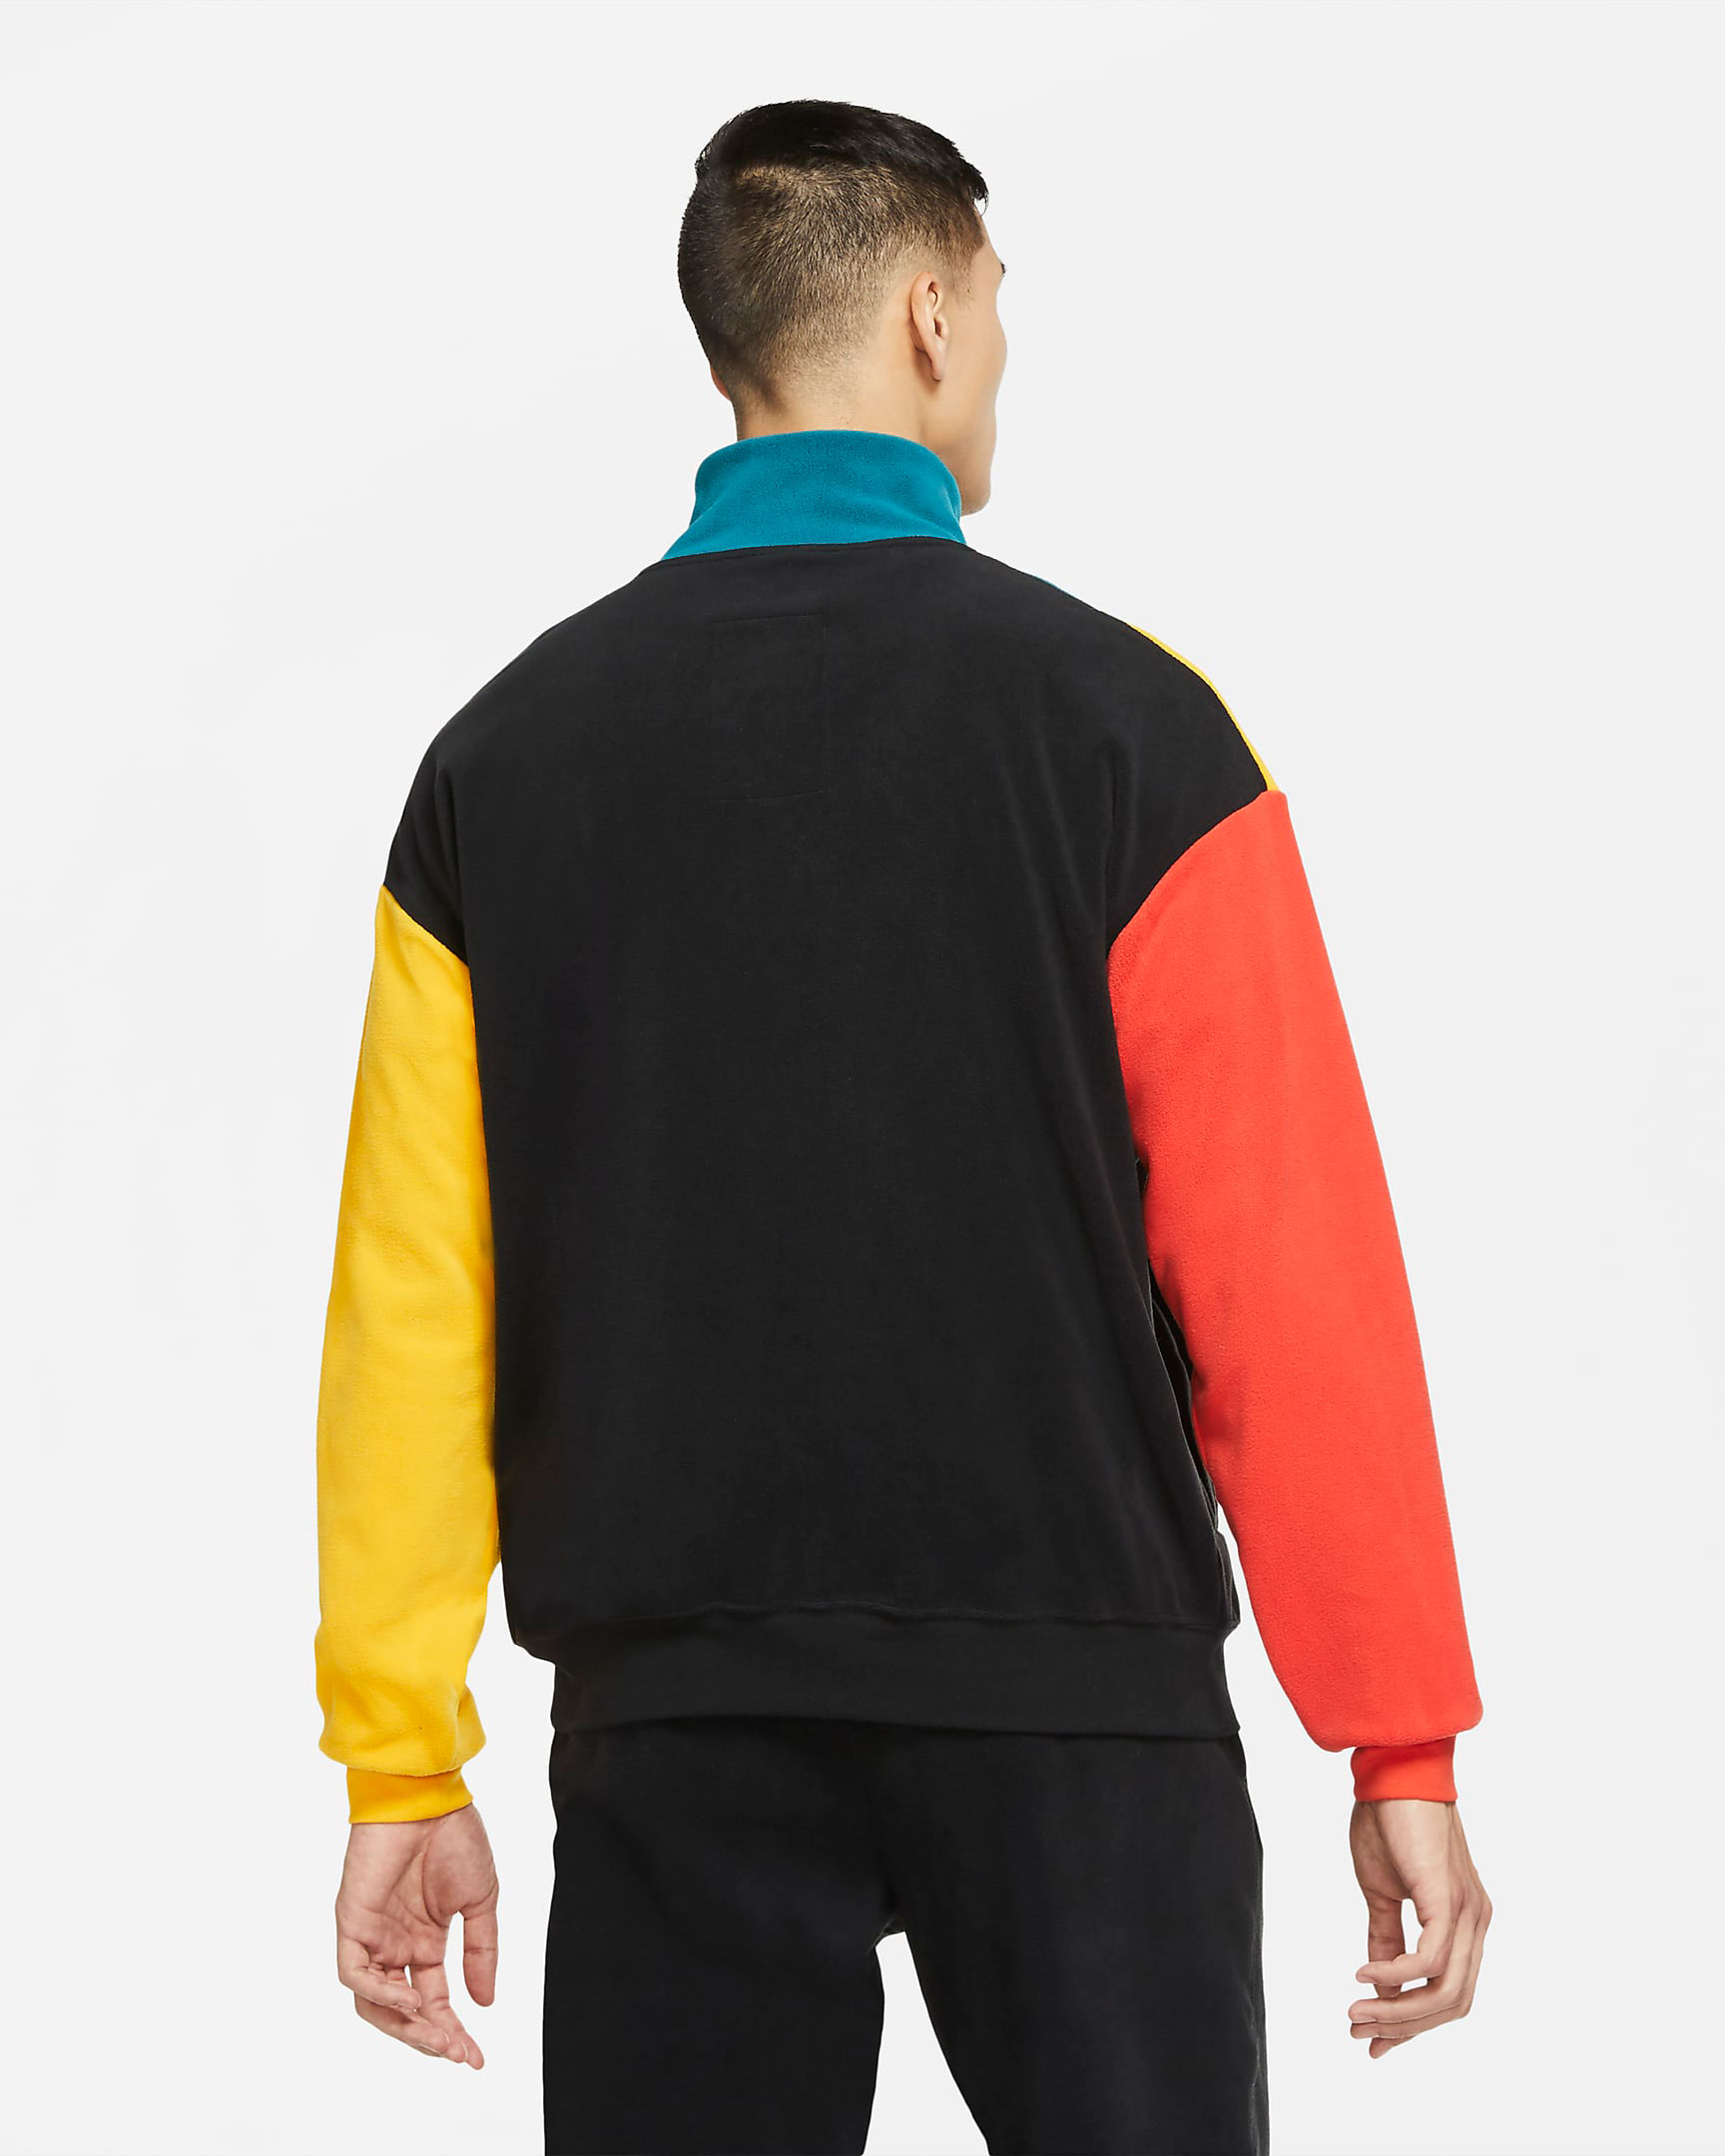 nike-urban-jungle-live-together-play-together-half-zip-top-2